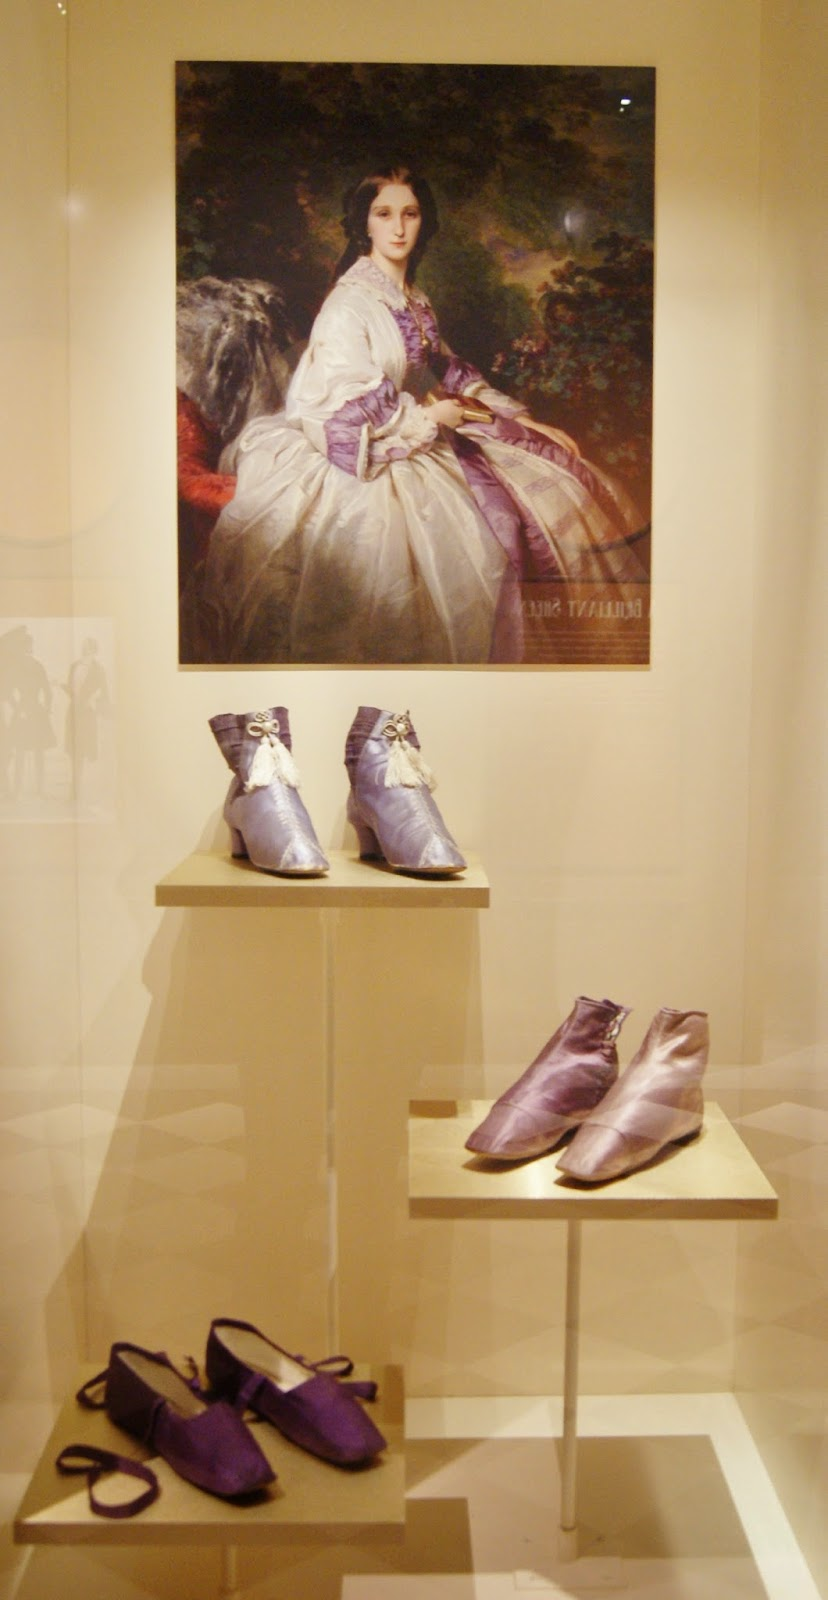 Fashion Victims: The Pleasures and Perils of Dress in the 19th Century Exhibit at Bata Shoe Museum in Toronto, Culture, The Purple Scarf, Melanie.Ps, Dress, Ontario, Canada, Clothing, History, Disease, Factory, Sewing, Mauve Measles, Toxic